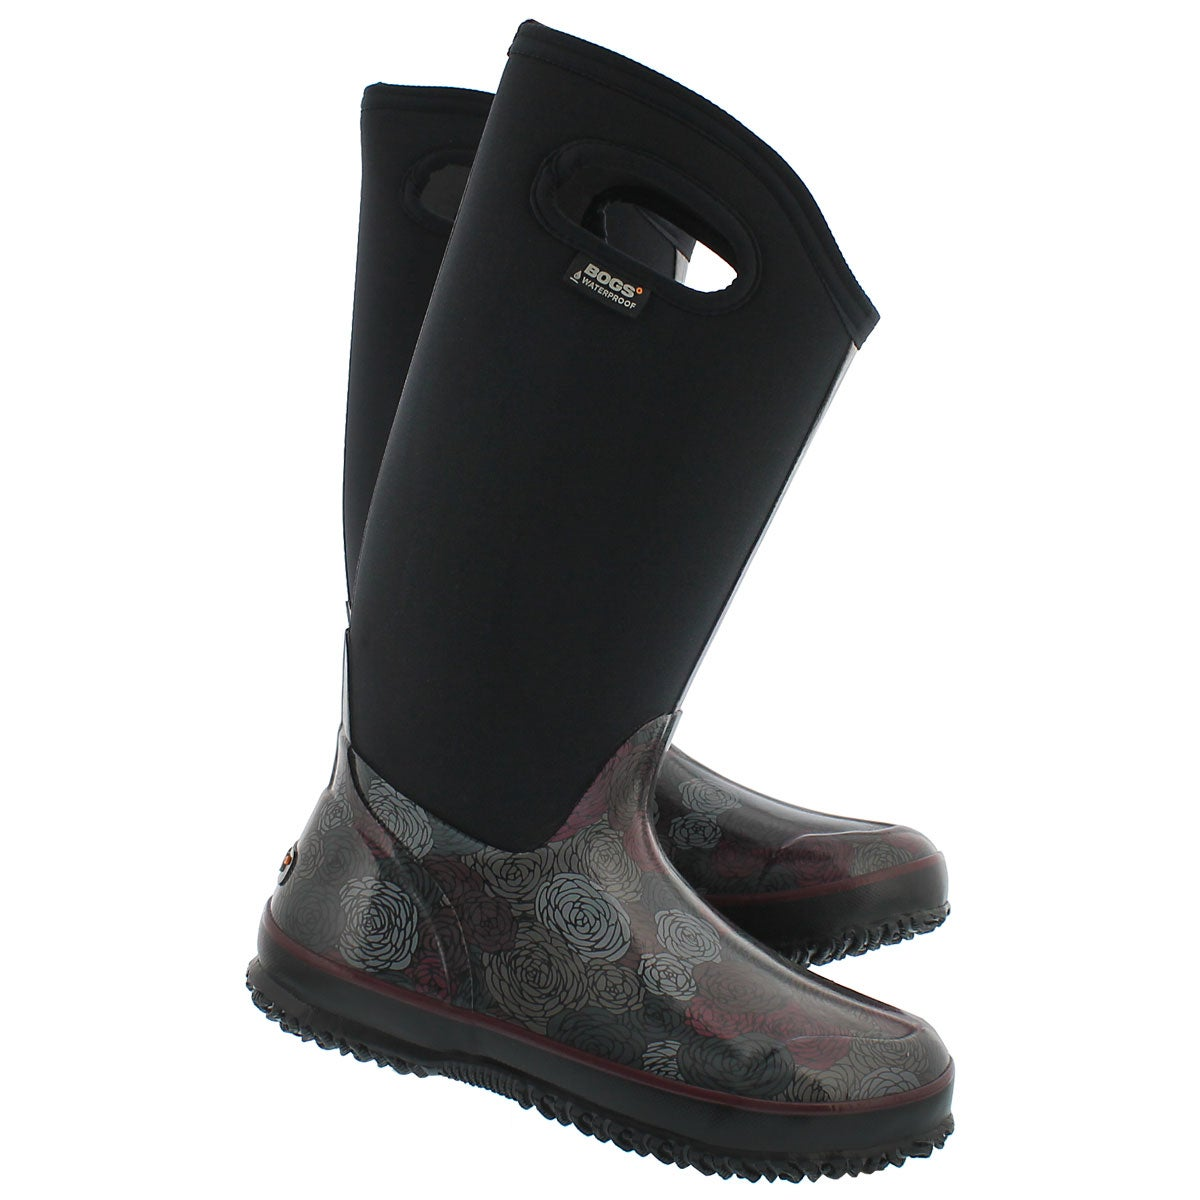 Lds Classic Rosey Tall blk wtpf boot